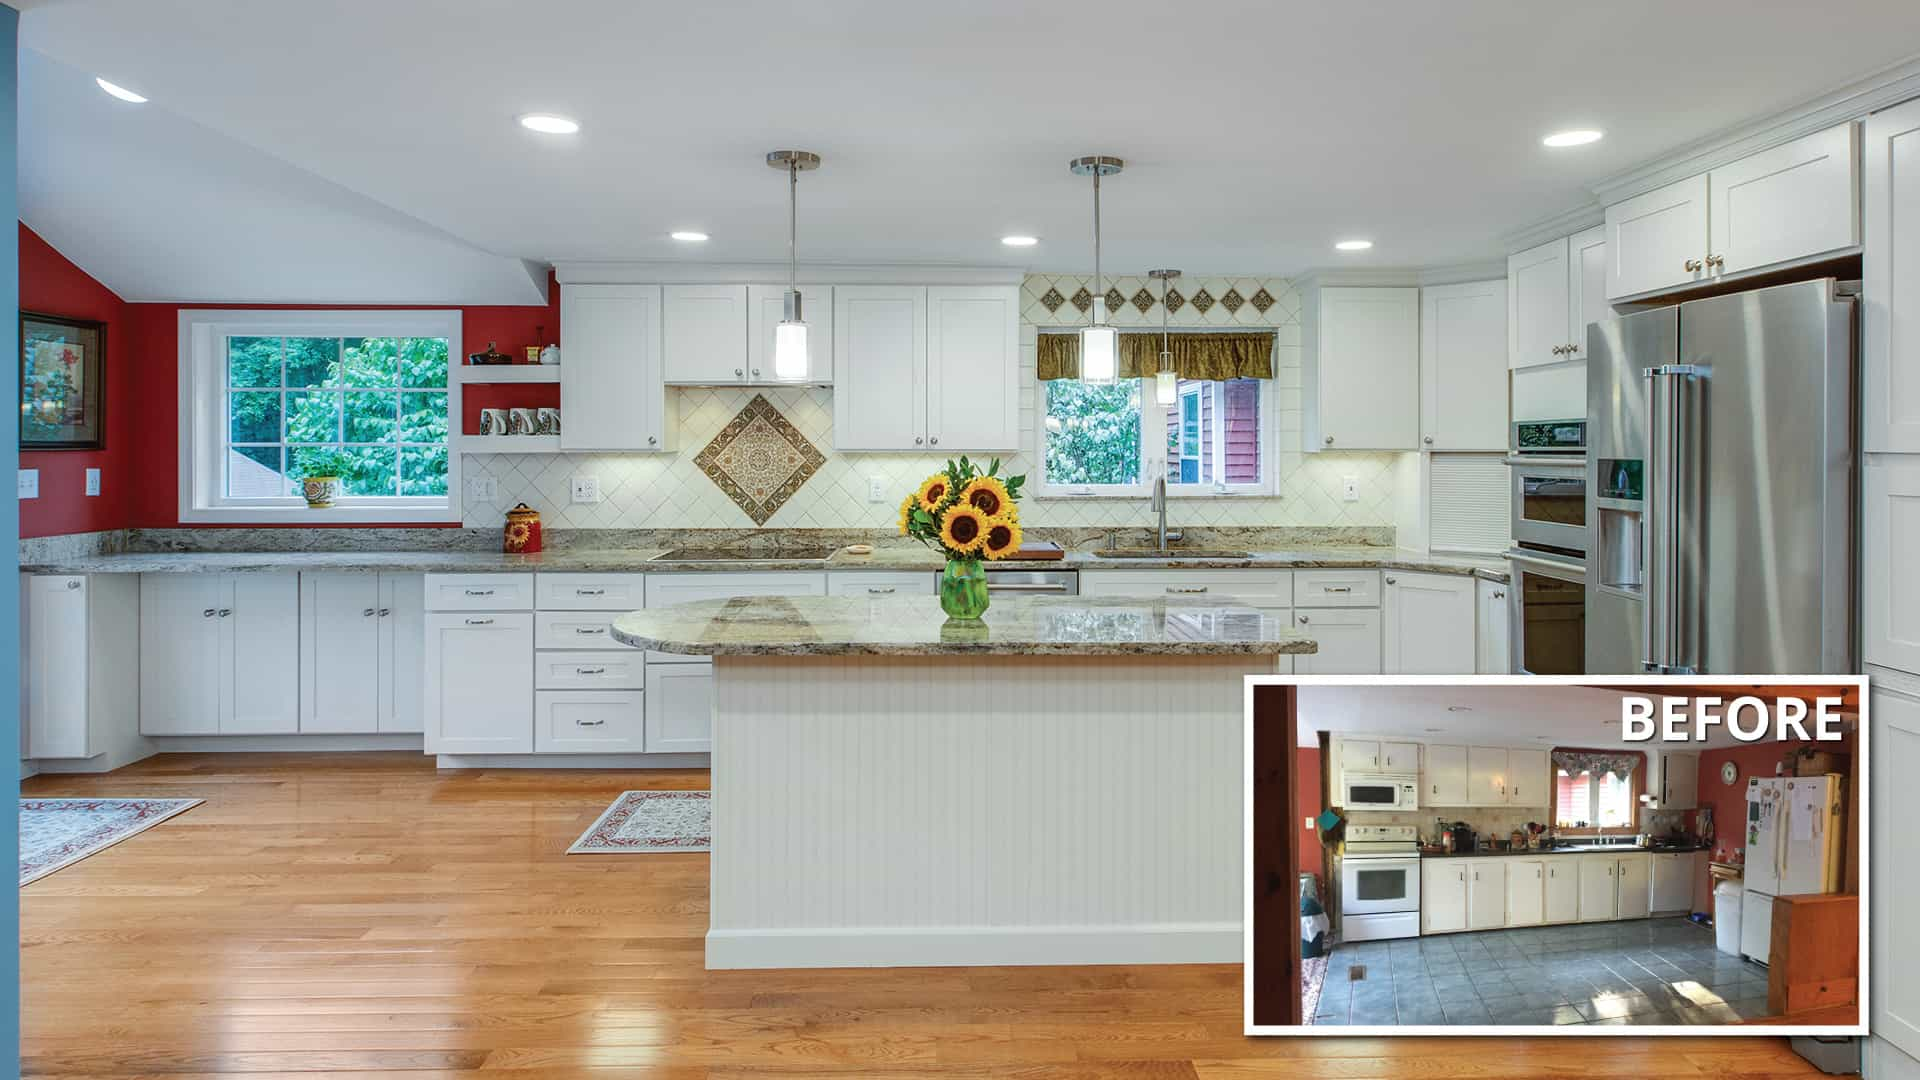 before and after kitchen remodel in Londonderry, NH